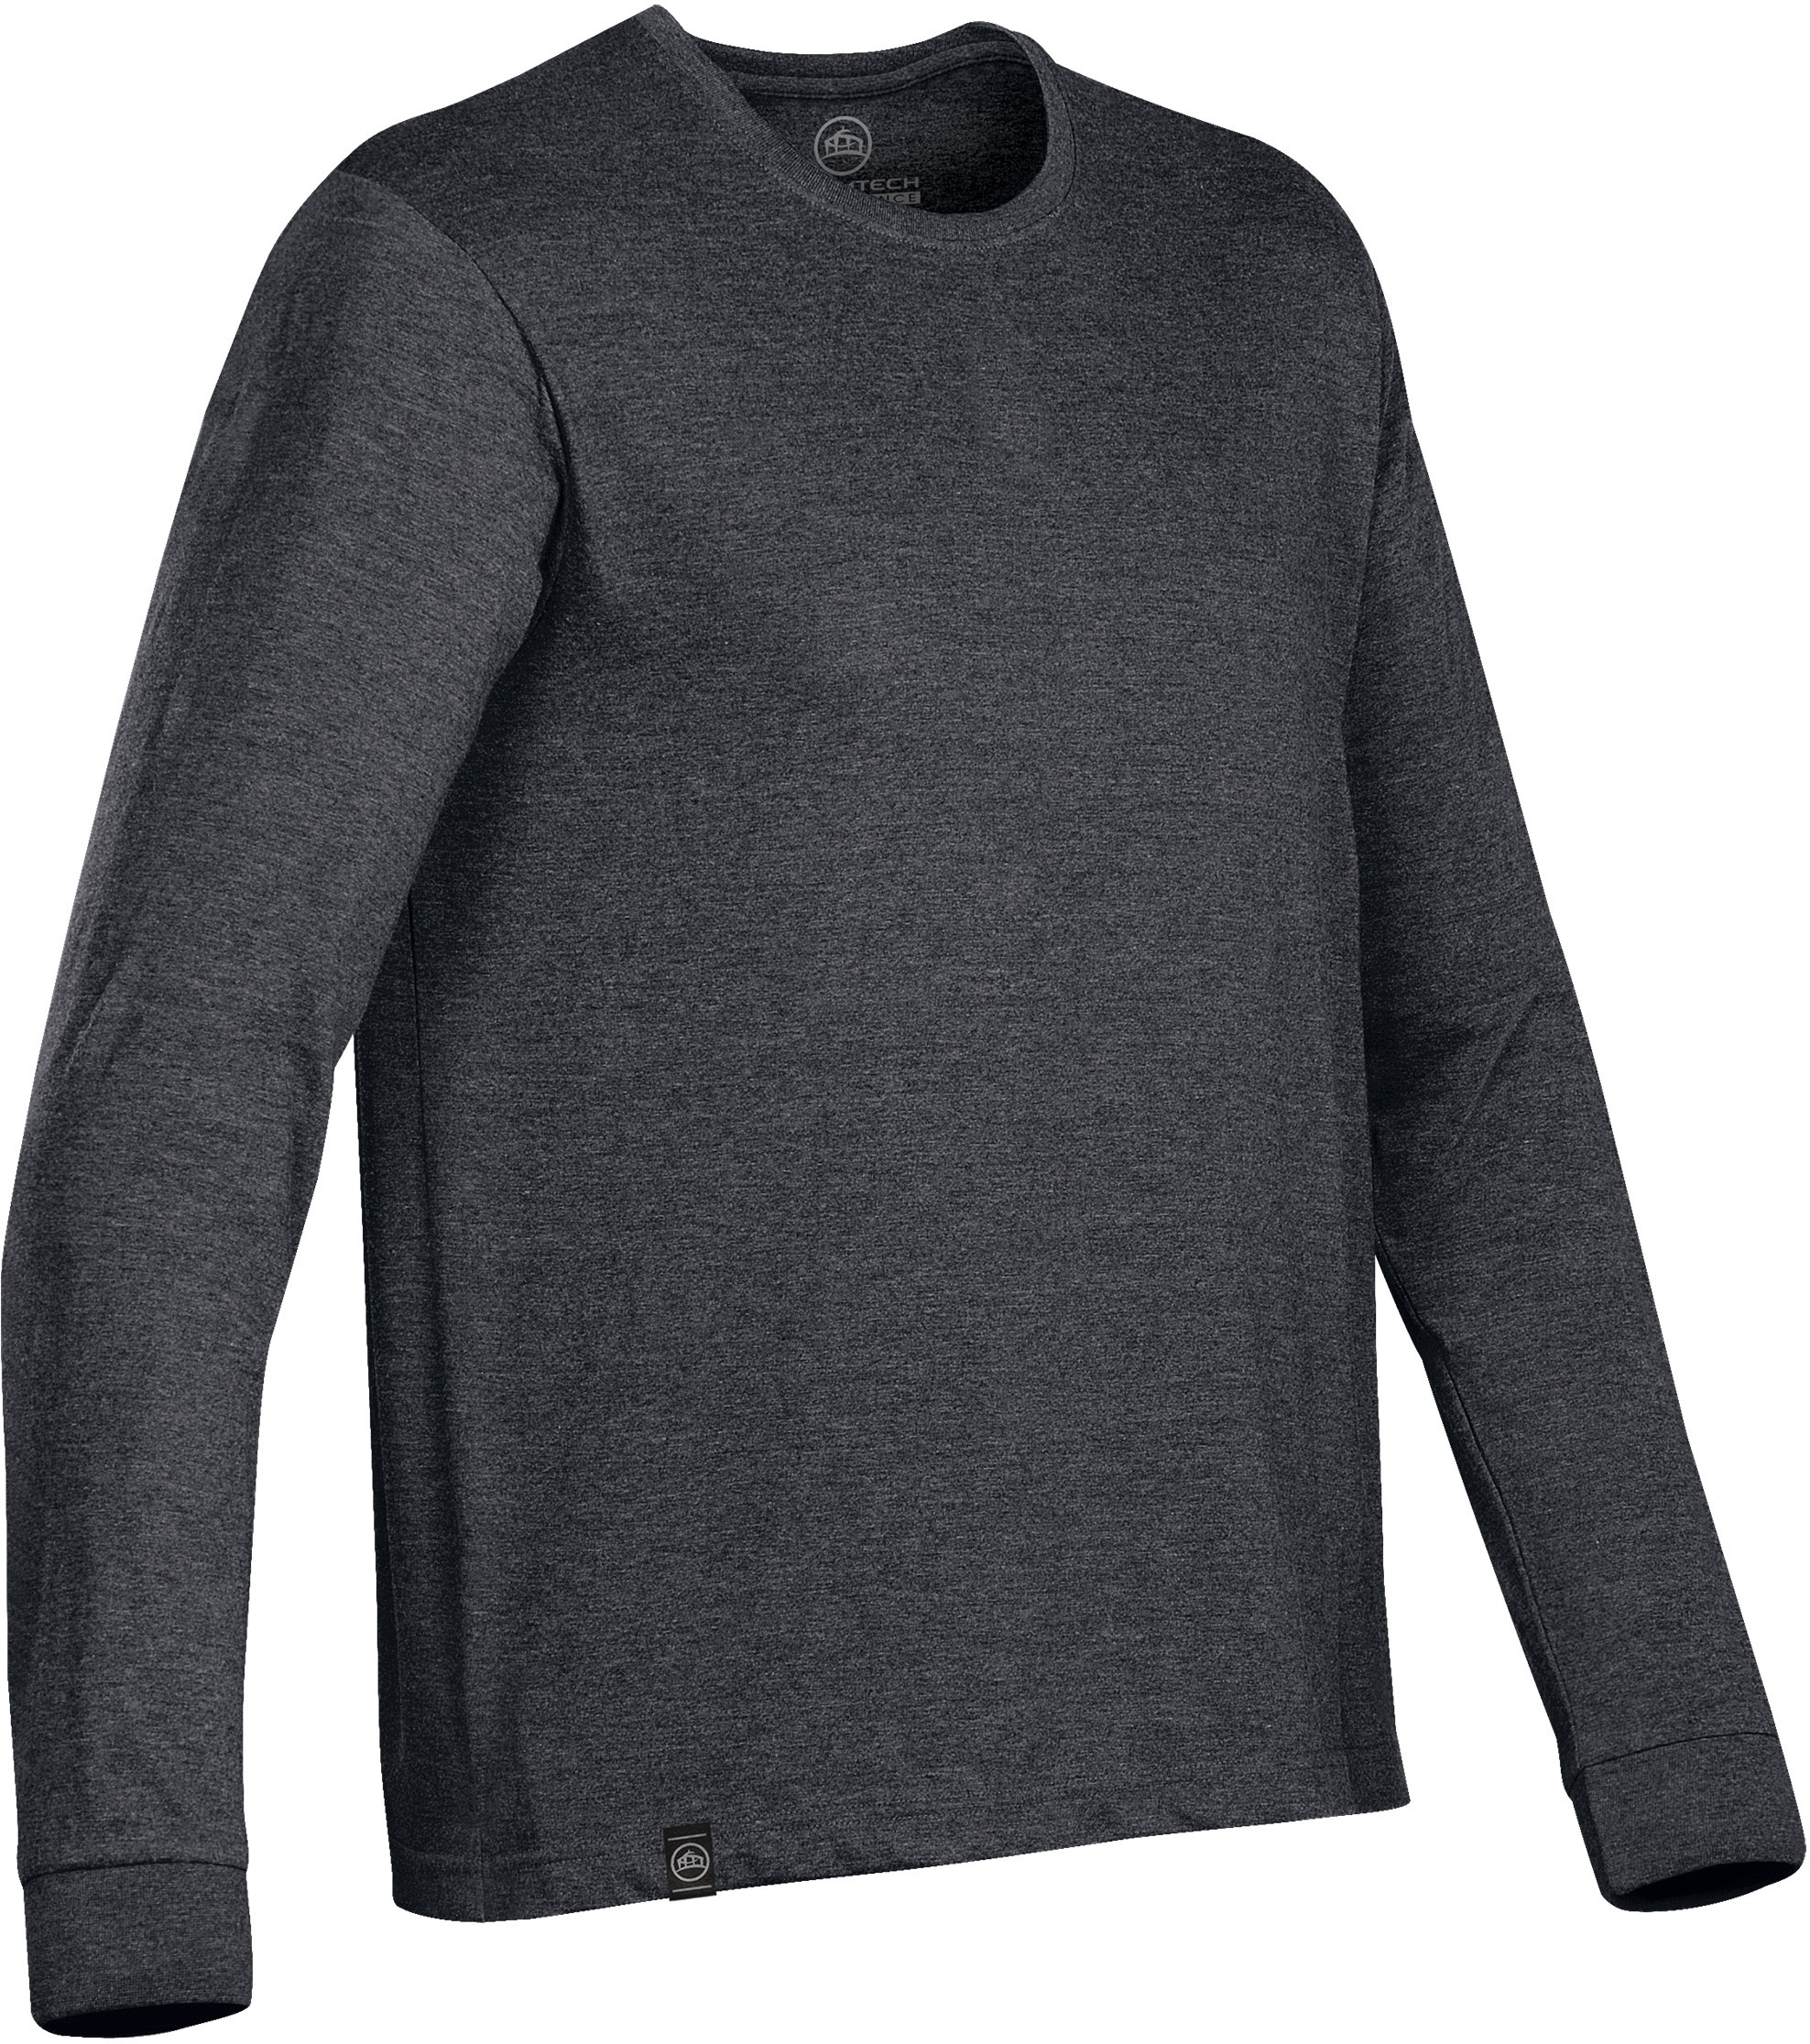 Stormtech Men's Baseline Long Sleeve Tee